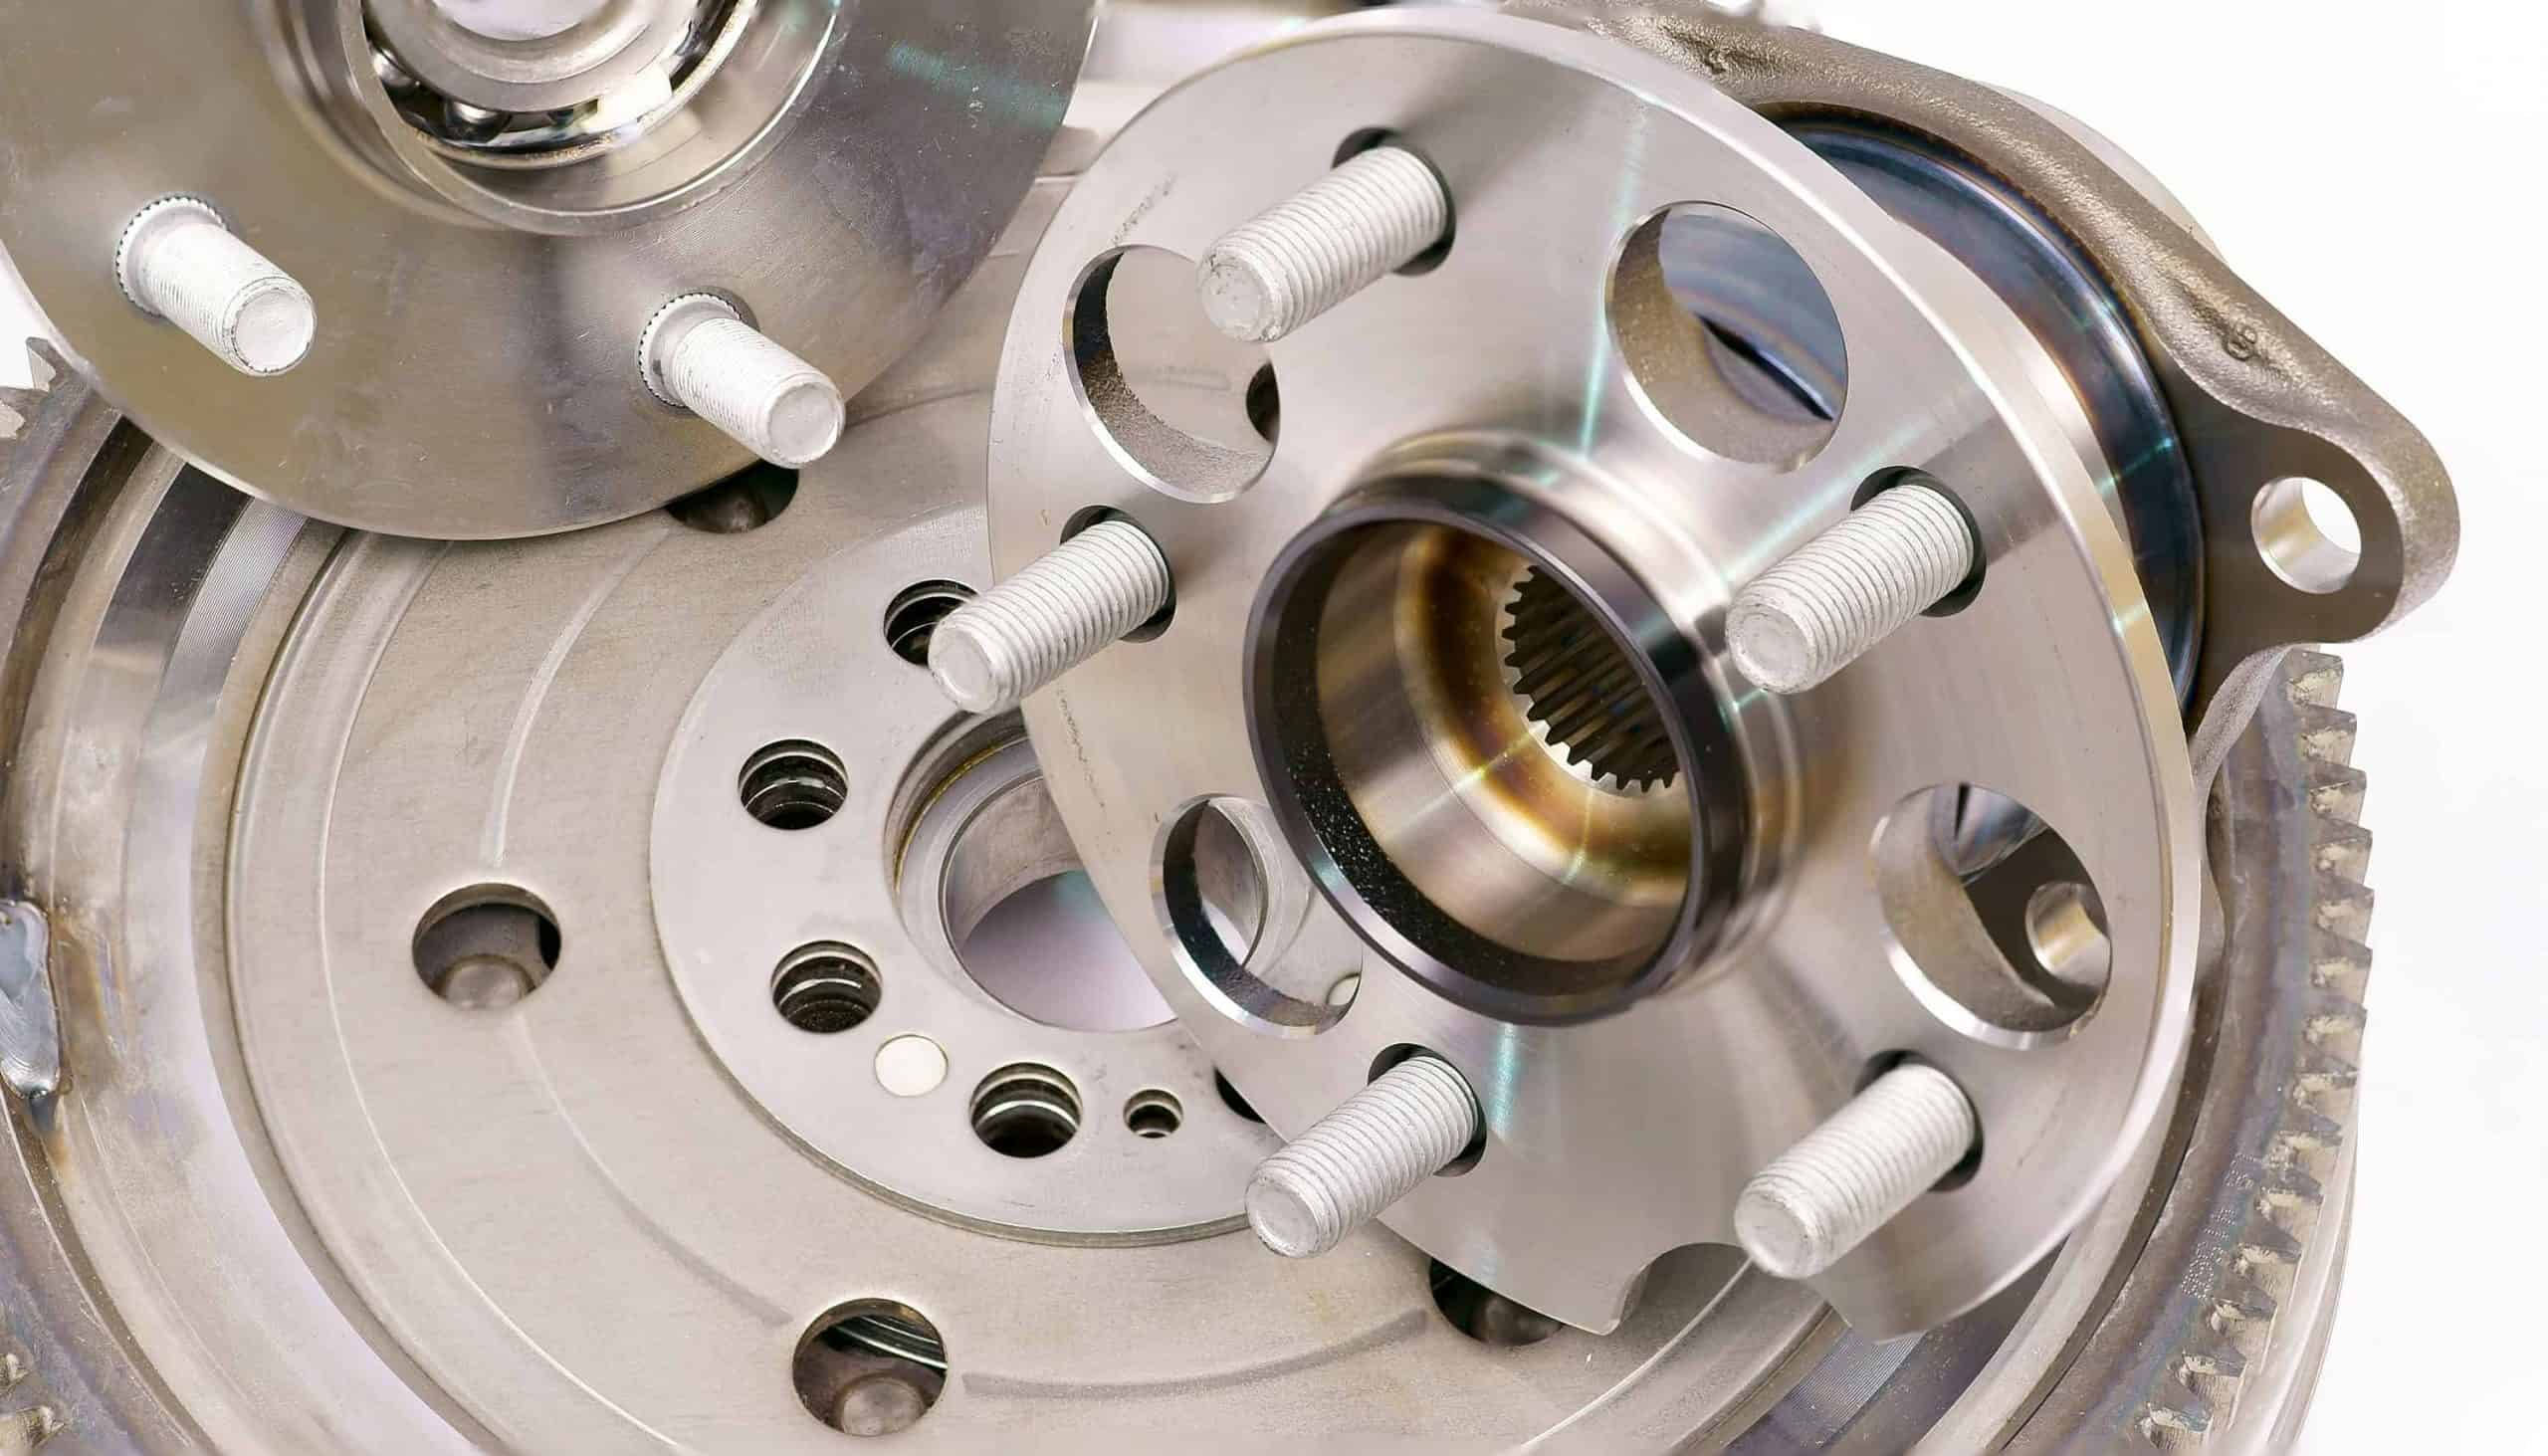 Wheel bearing replacement costs